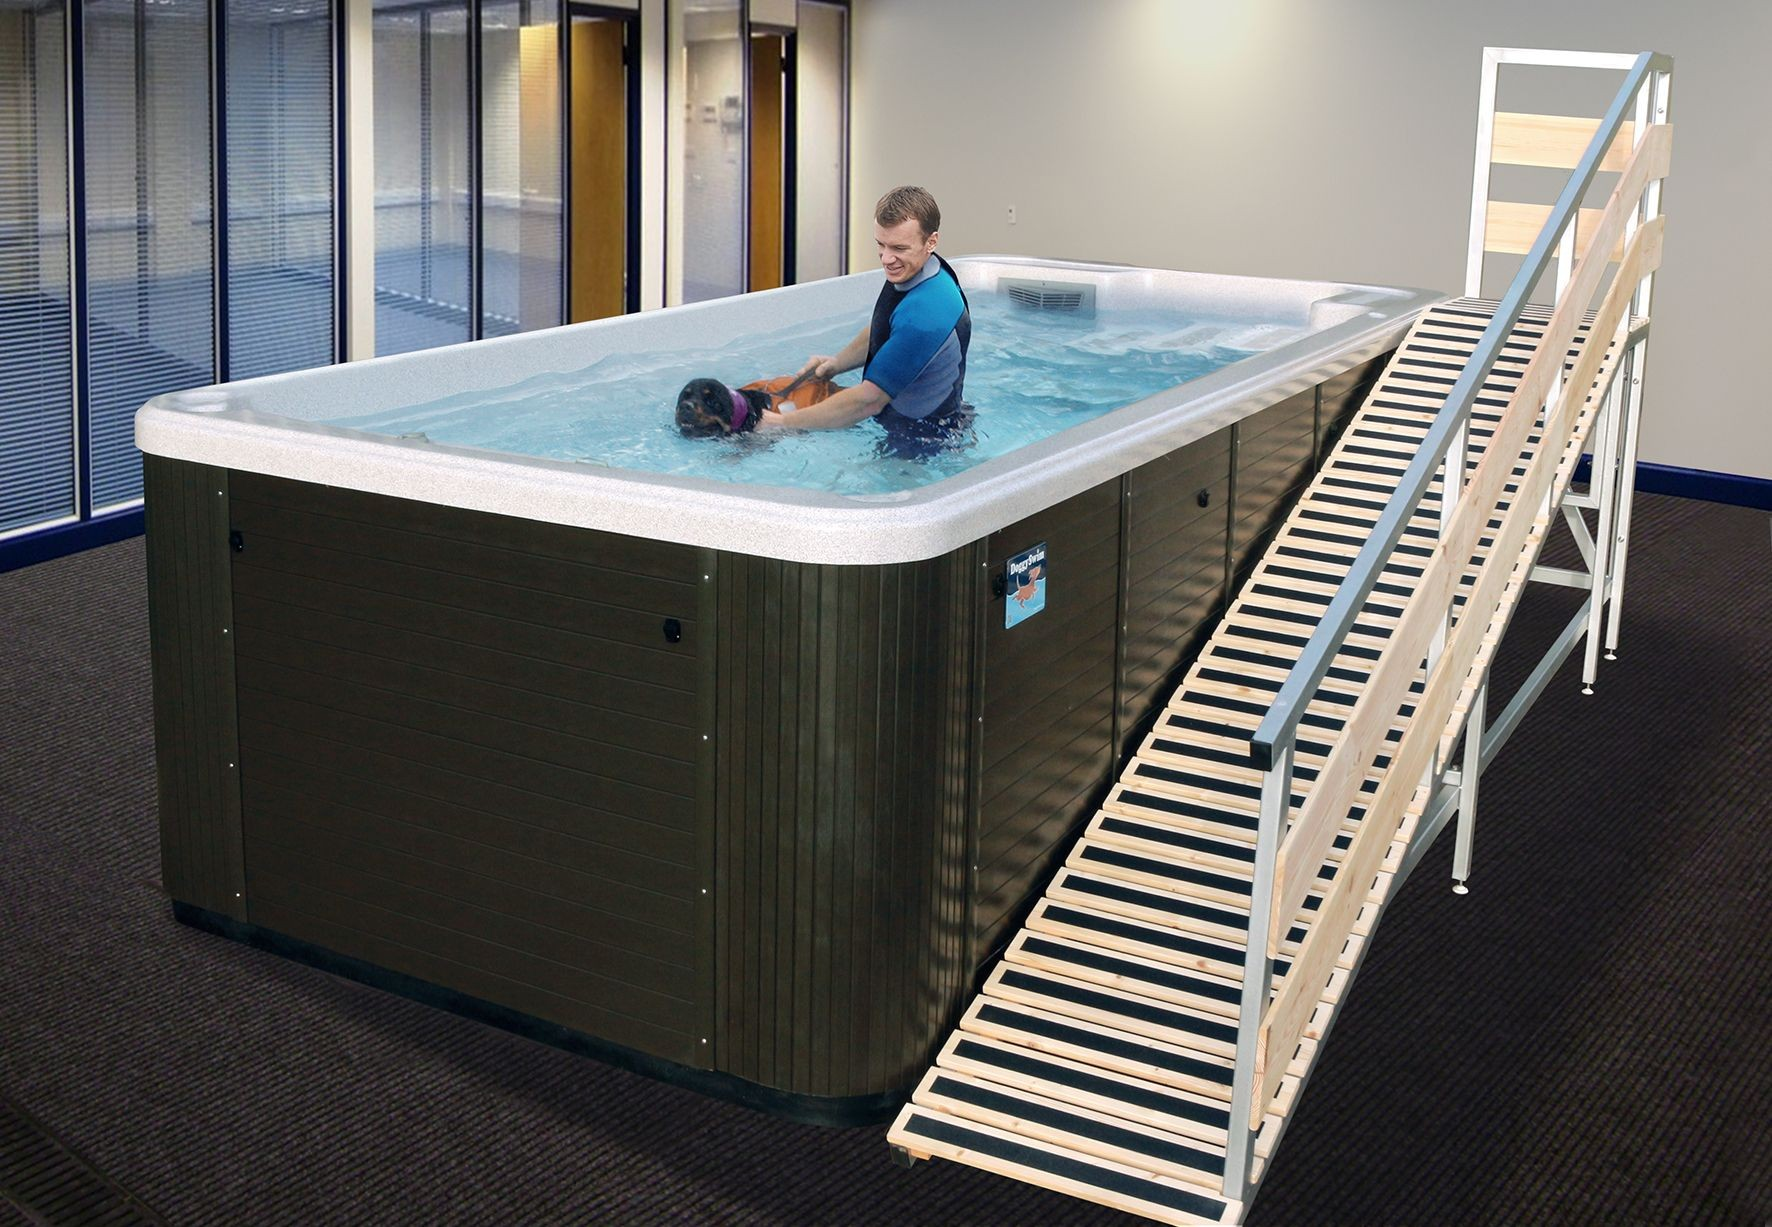 DoggySwim Canine Exercise Pools - Hydrotherapy for Dogs!